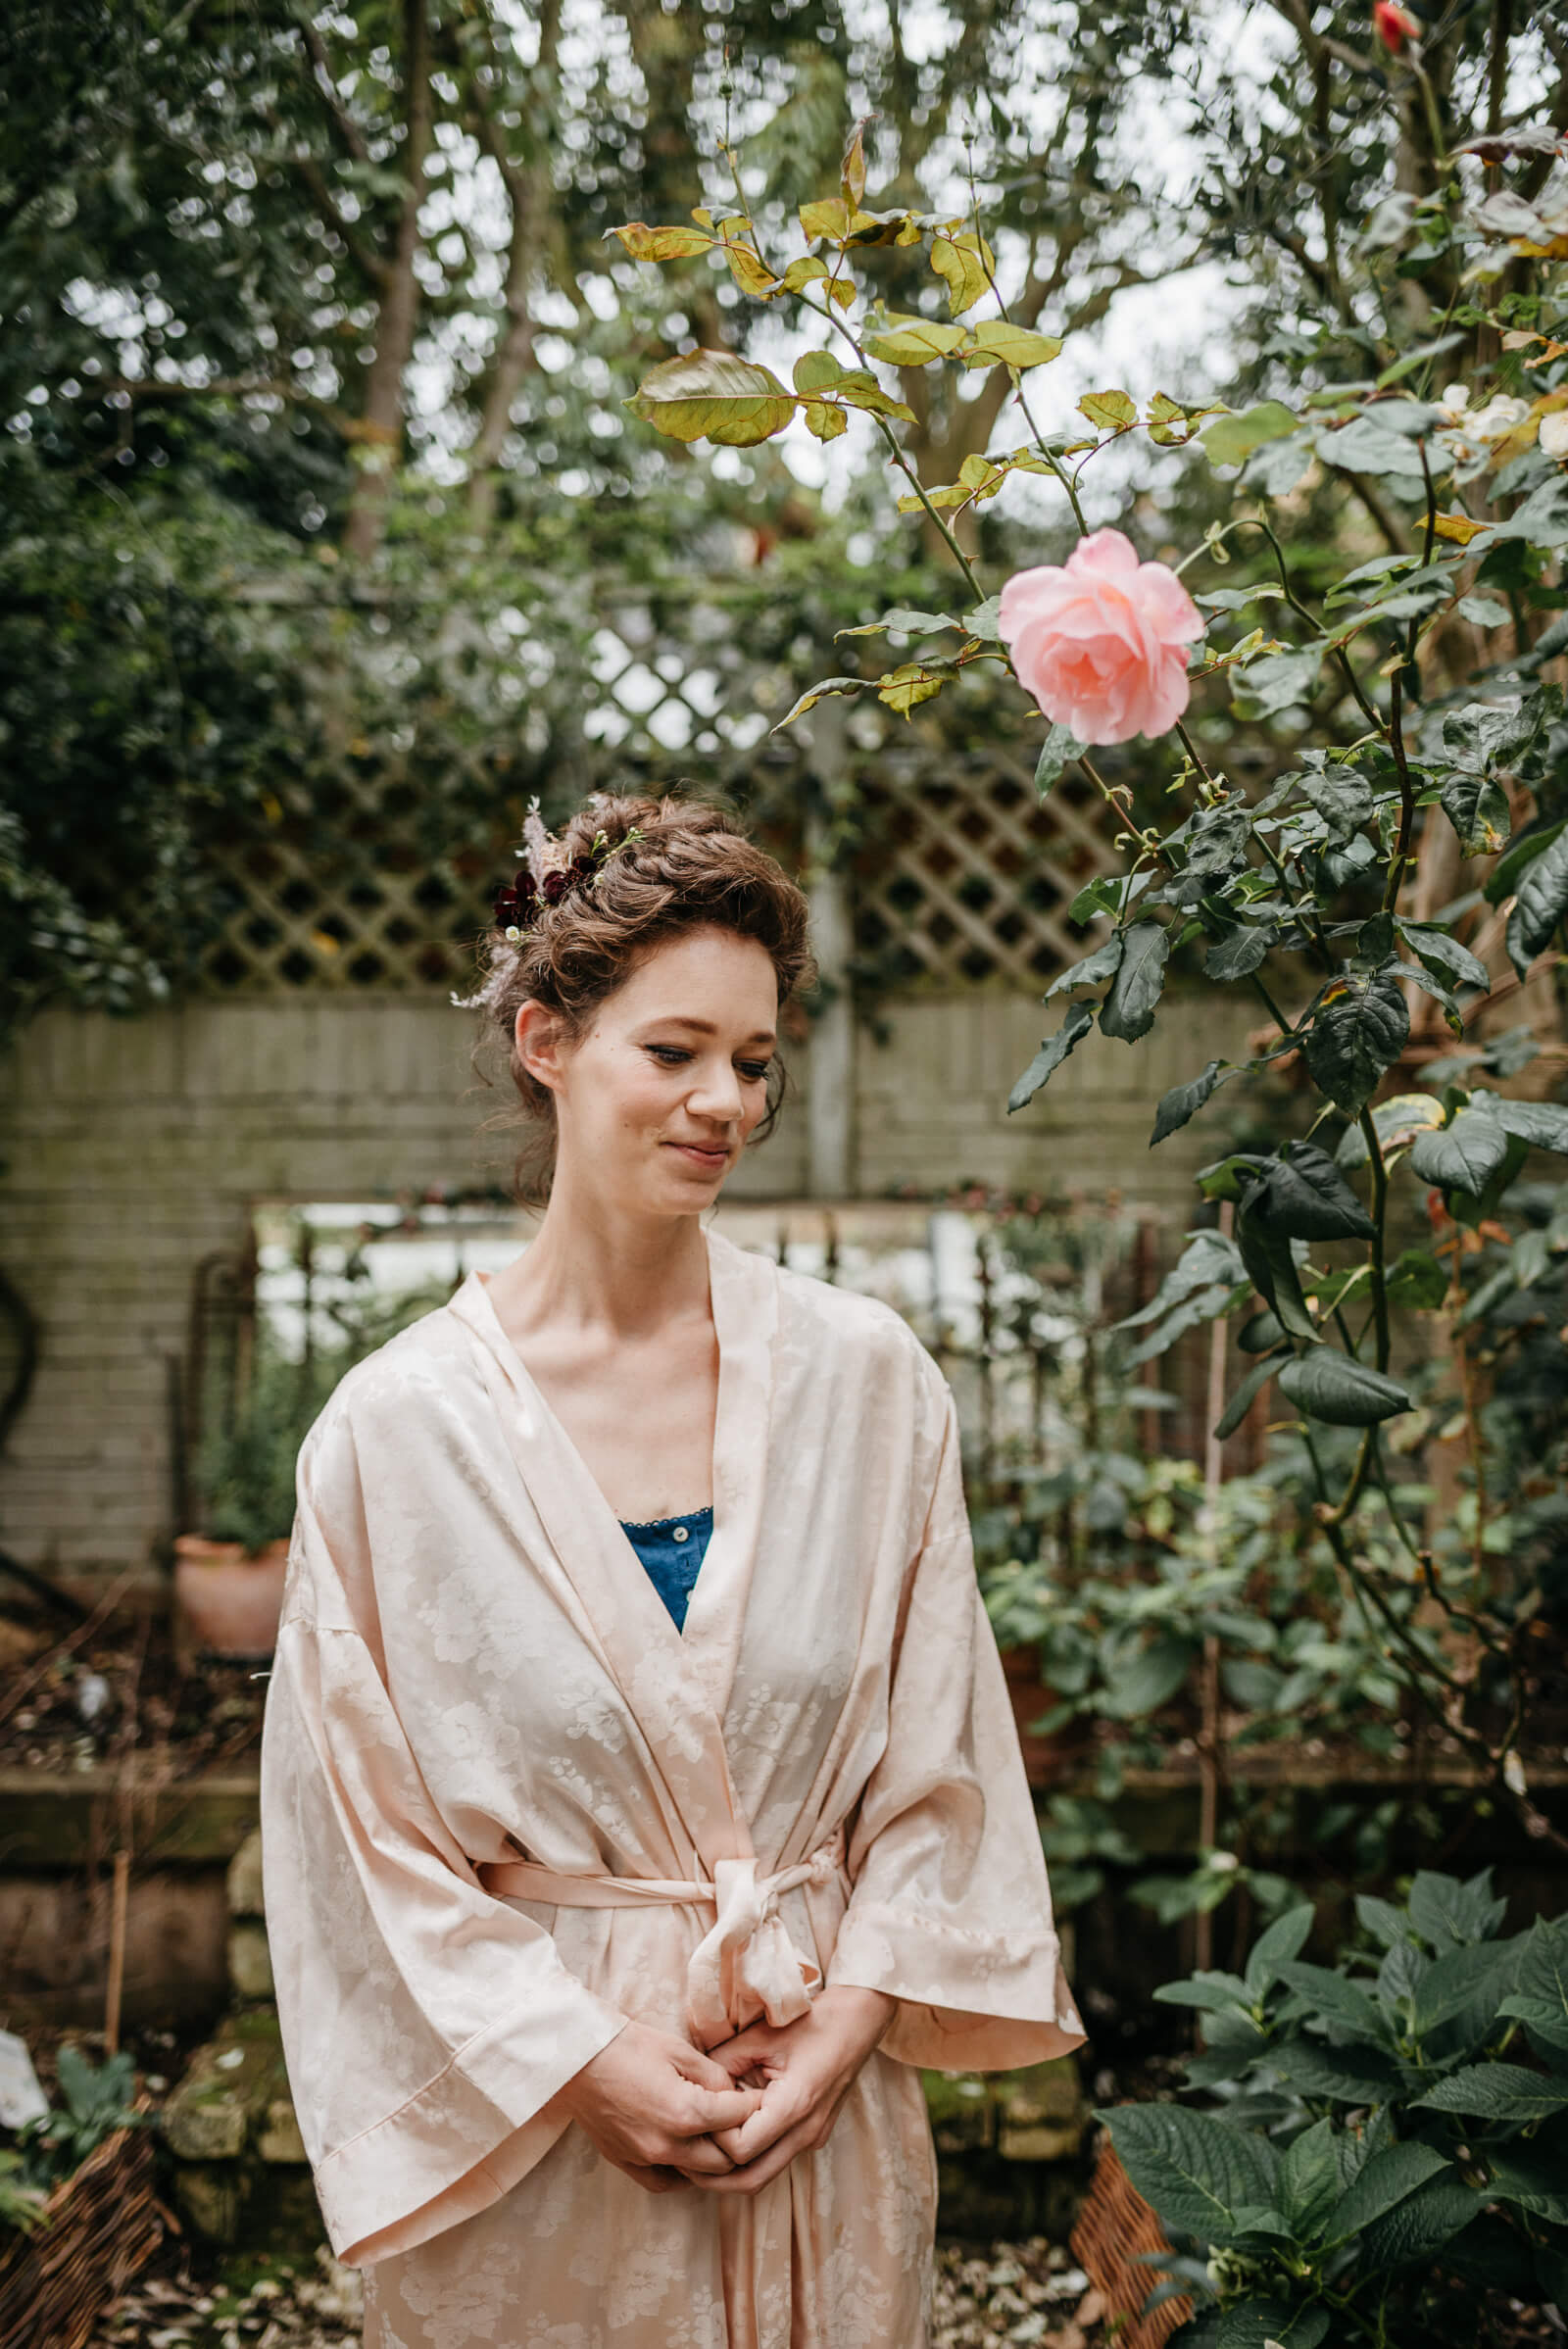 portrait of London bride in garden with pale pink rose wearing pale pink kimono